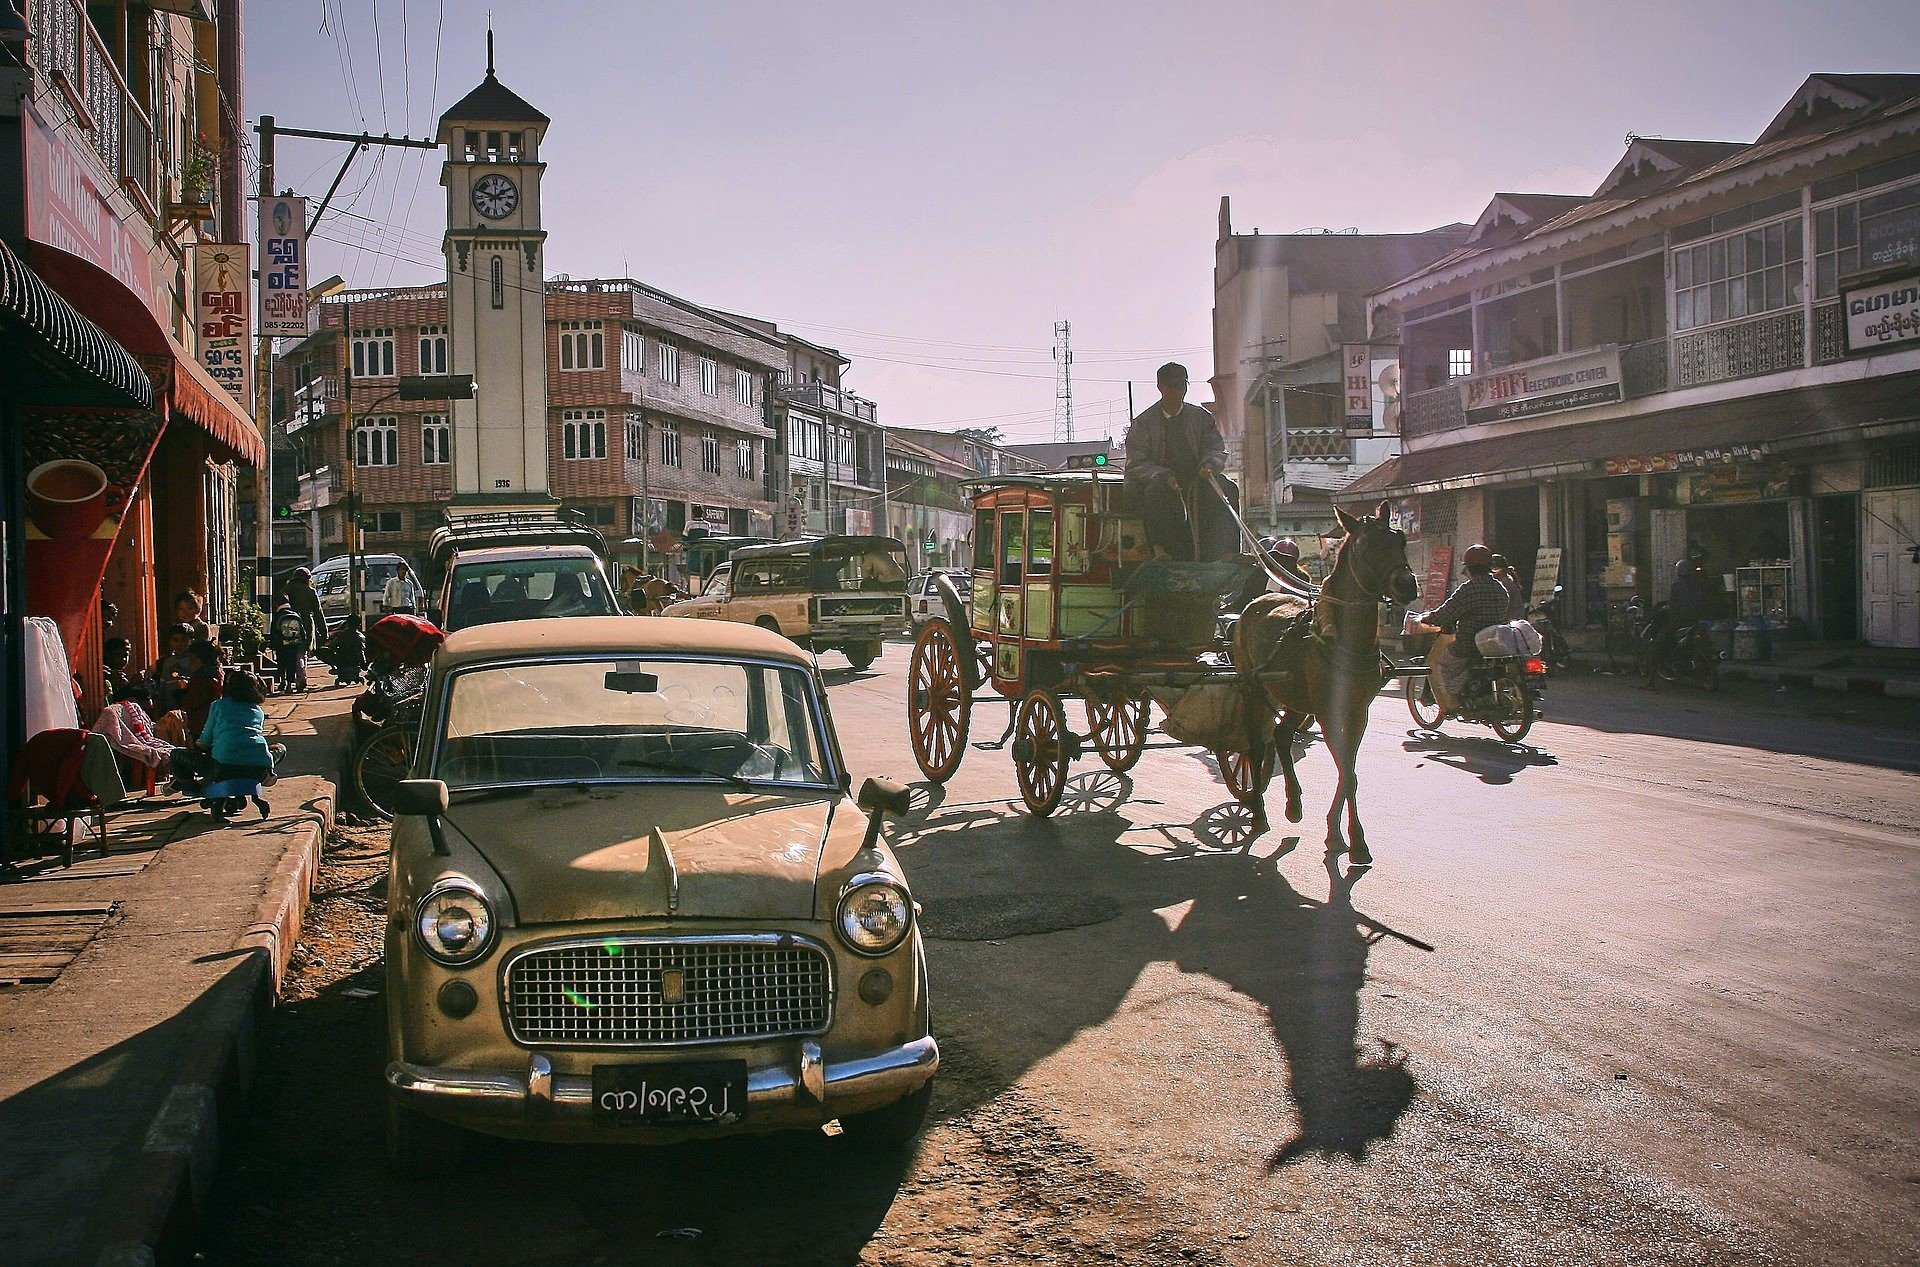 Horse drawn carriage in Pyin Oo Lwin